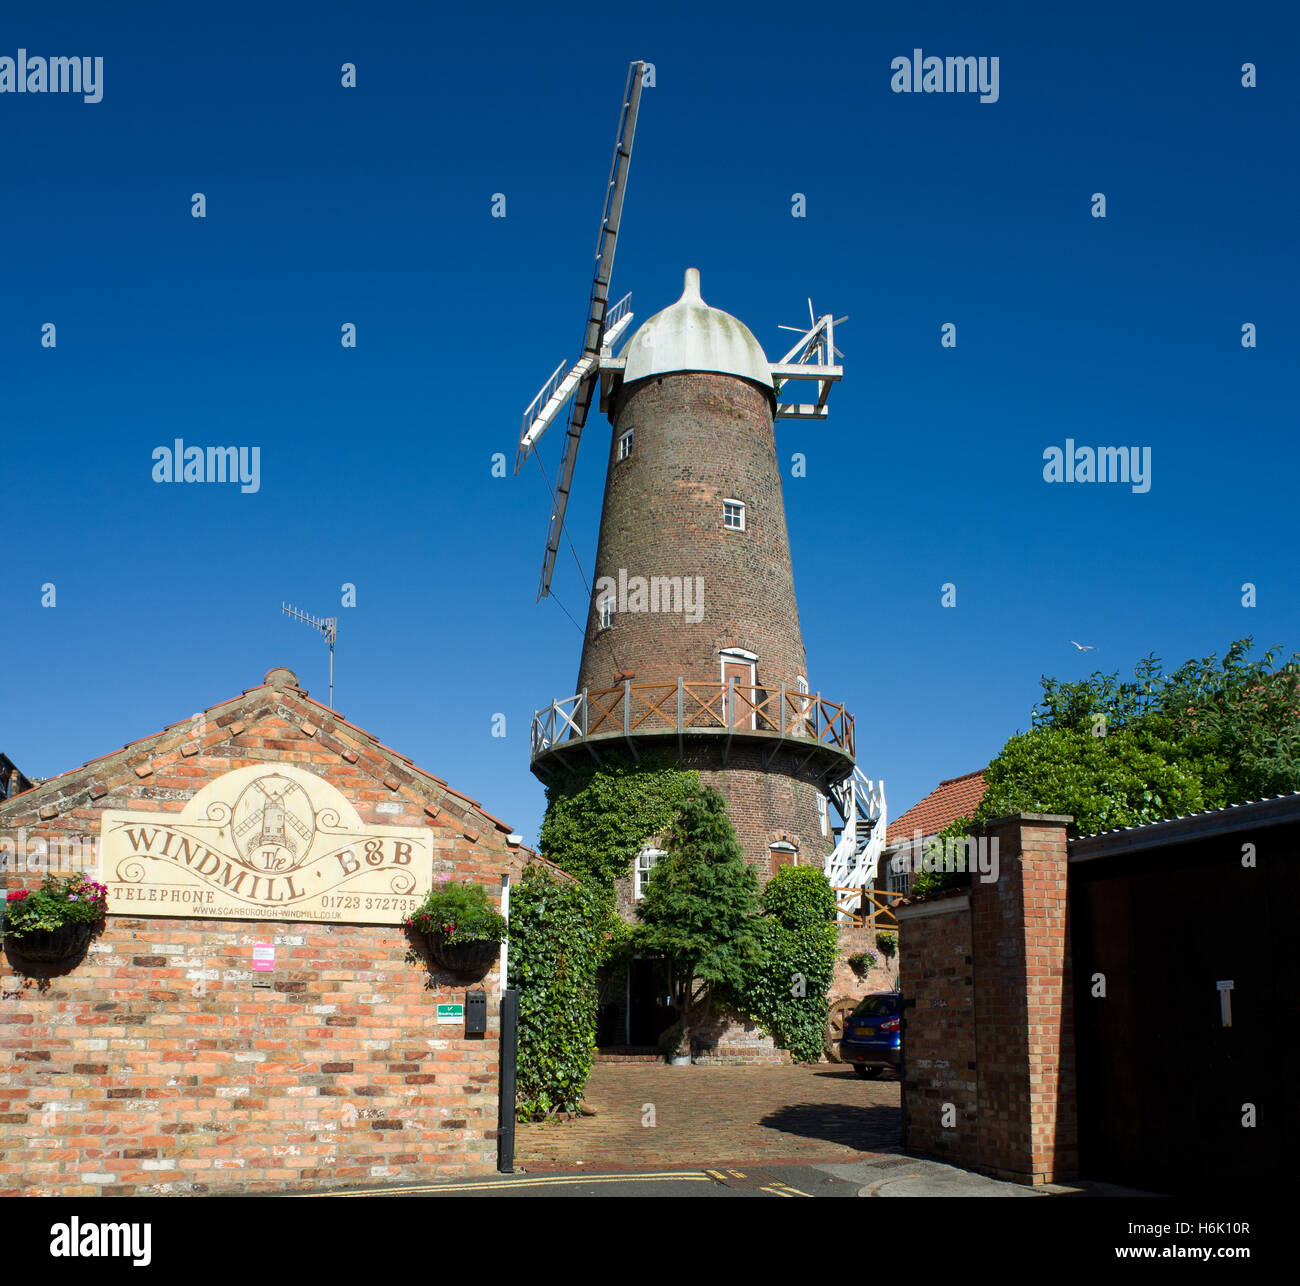 Windmill converted to B&B Scarborough North Yorkshire UK - Stock Image